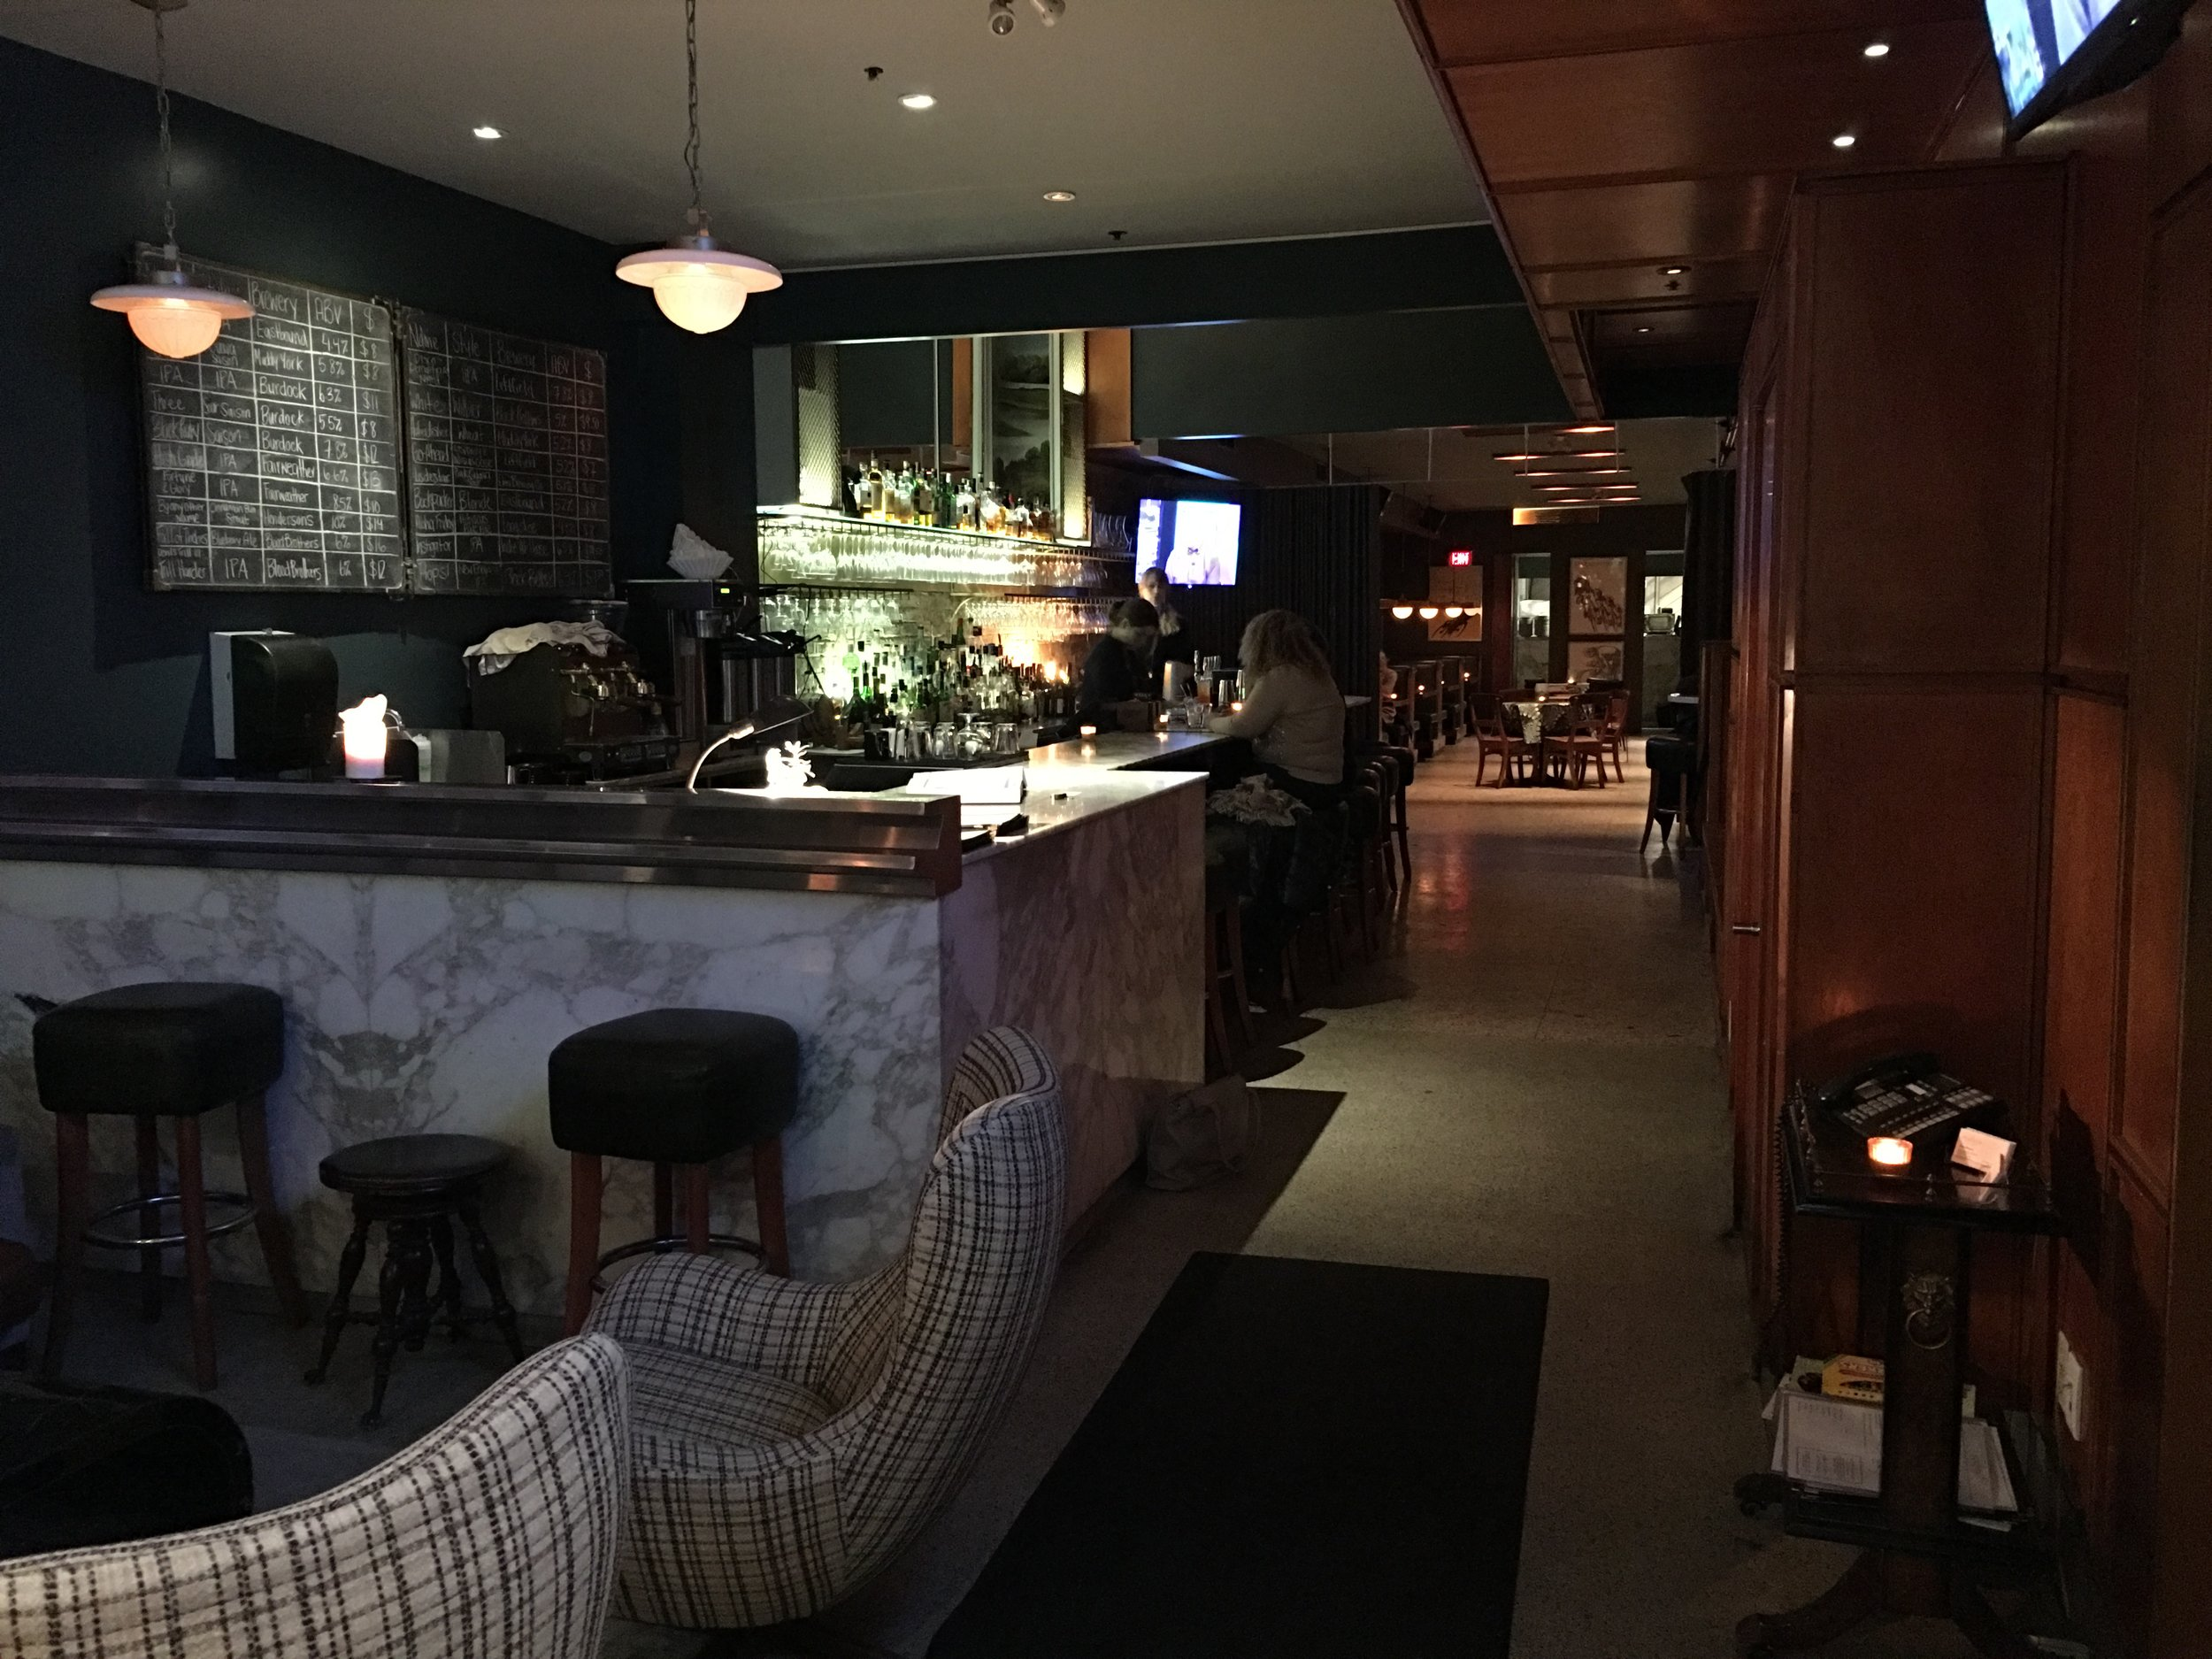 Picture of the bar and pathway to the dining area of the Peacock